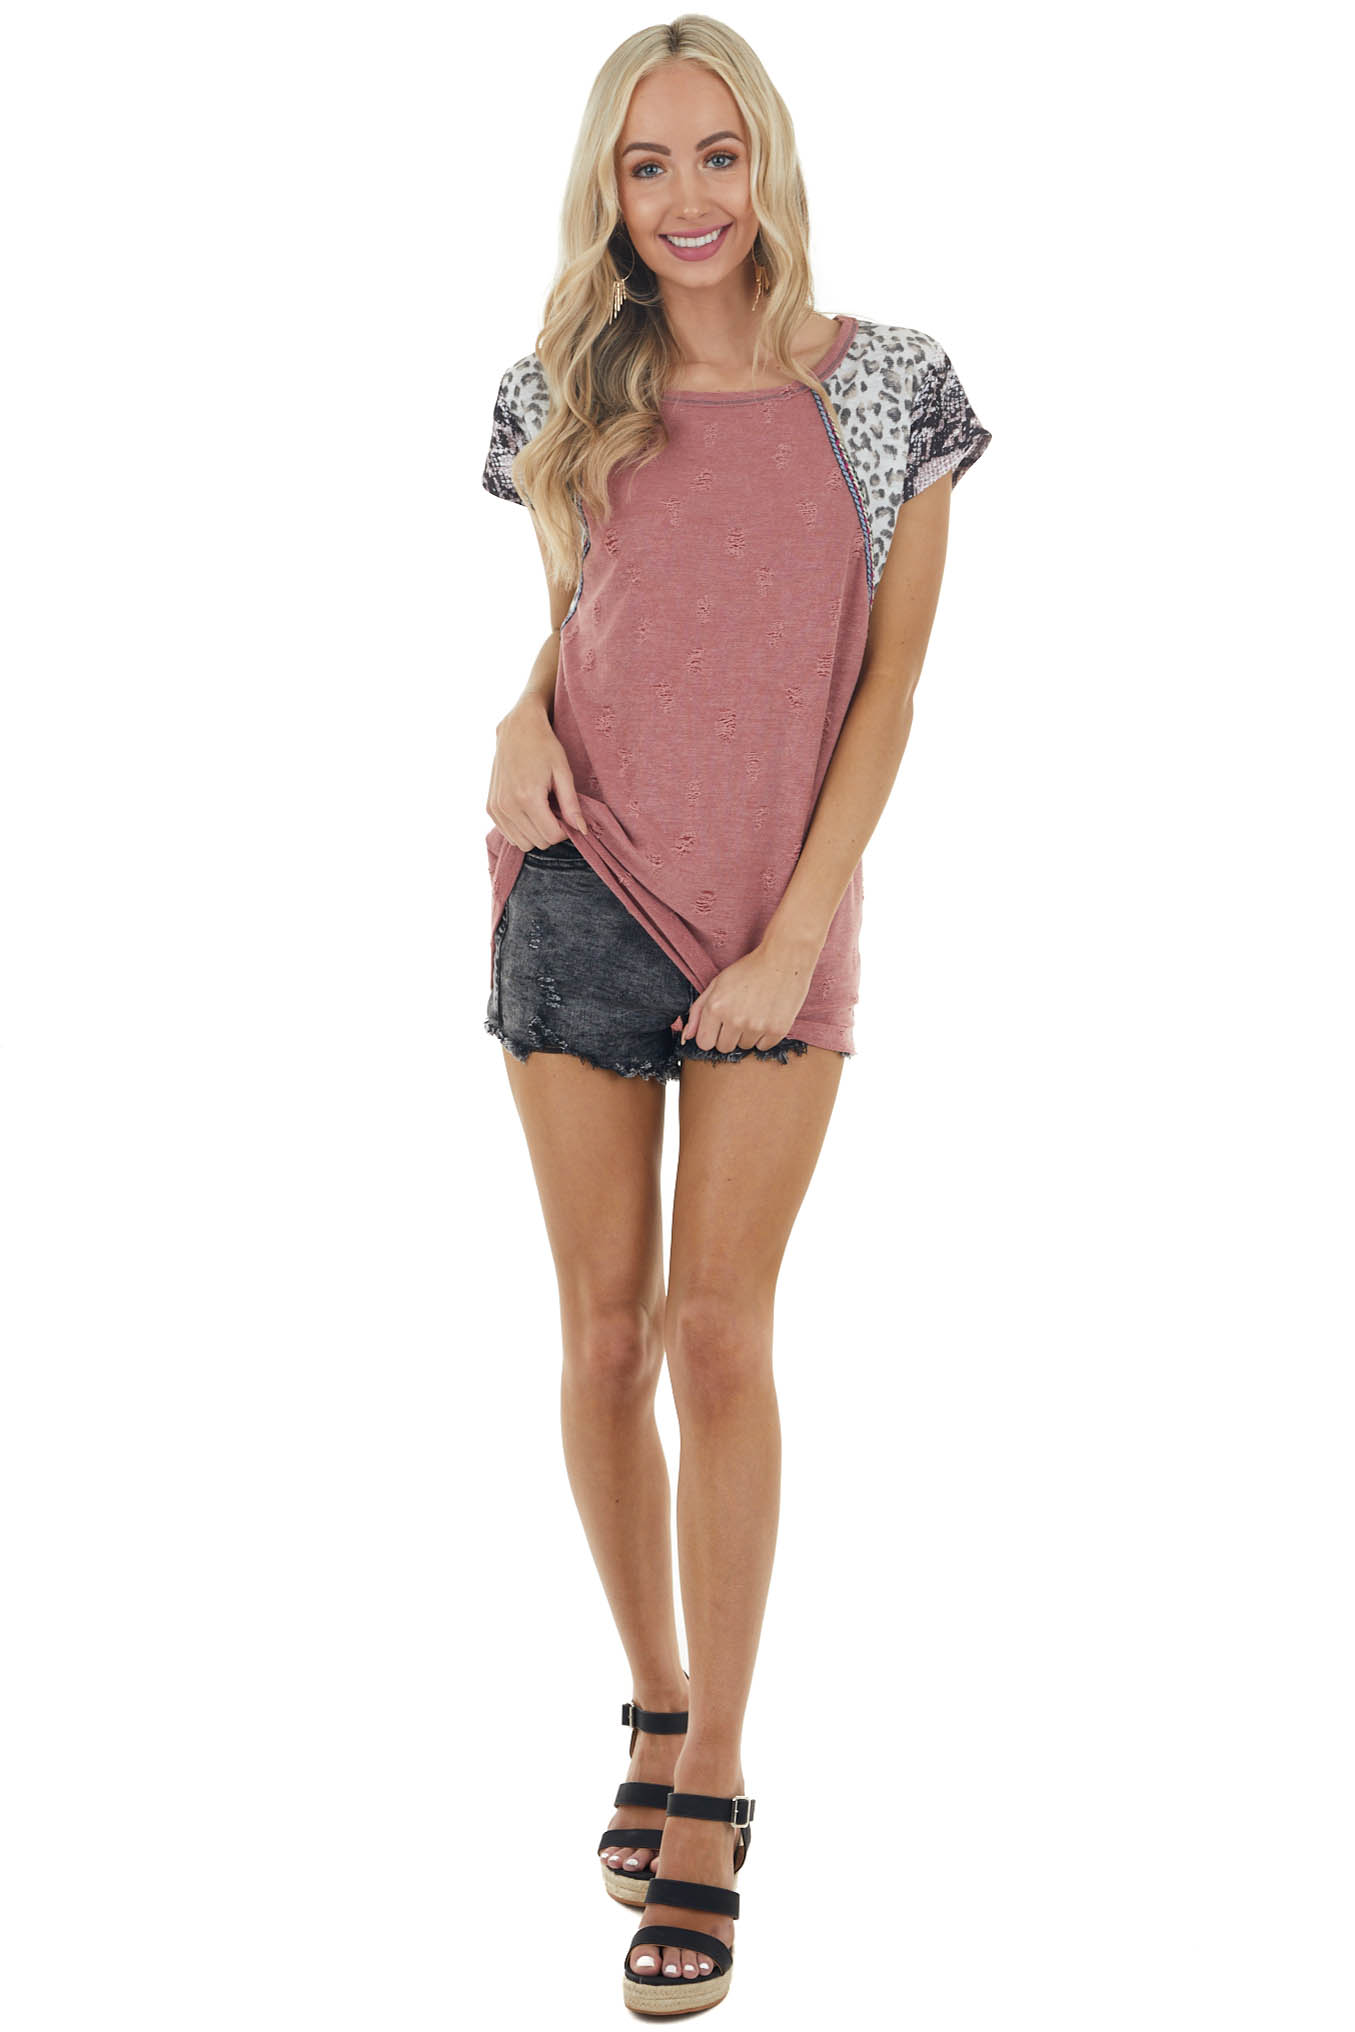 Berry Distressed Knit Top with Multiprint Short Sleeves